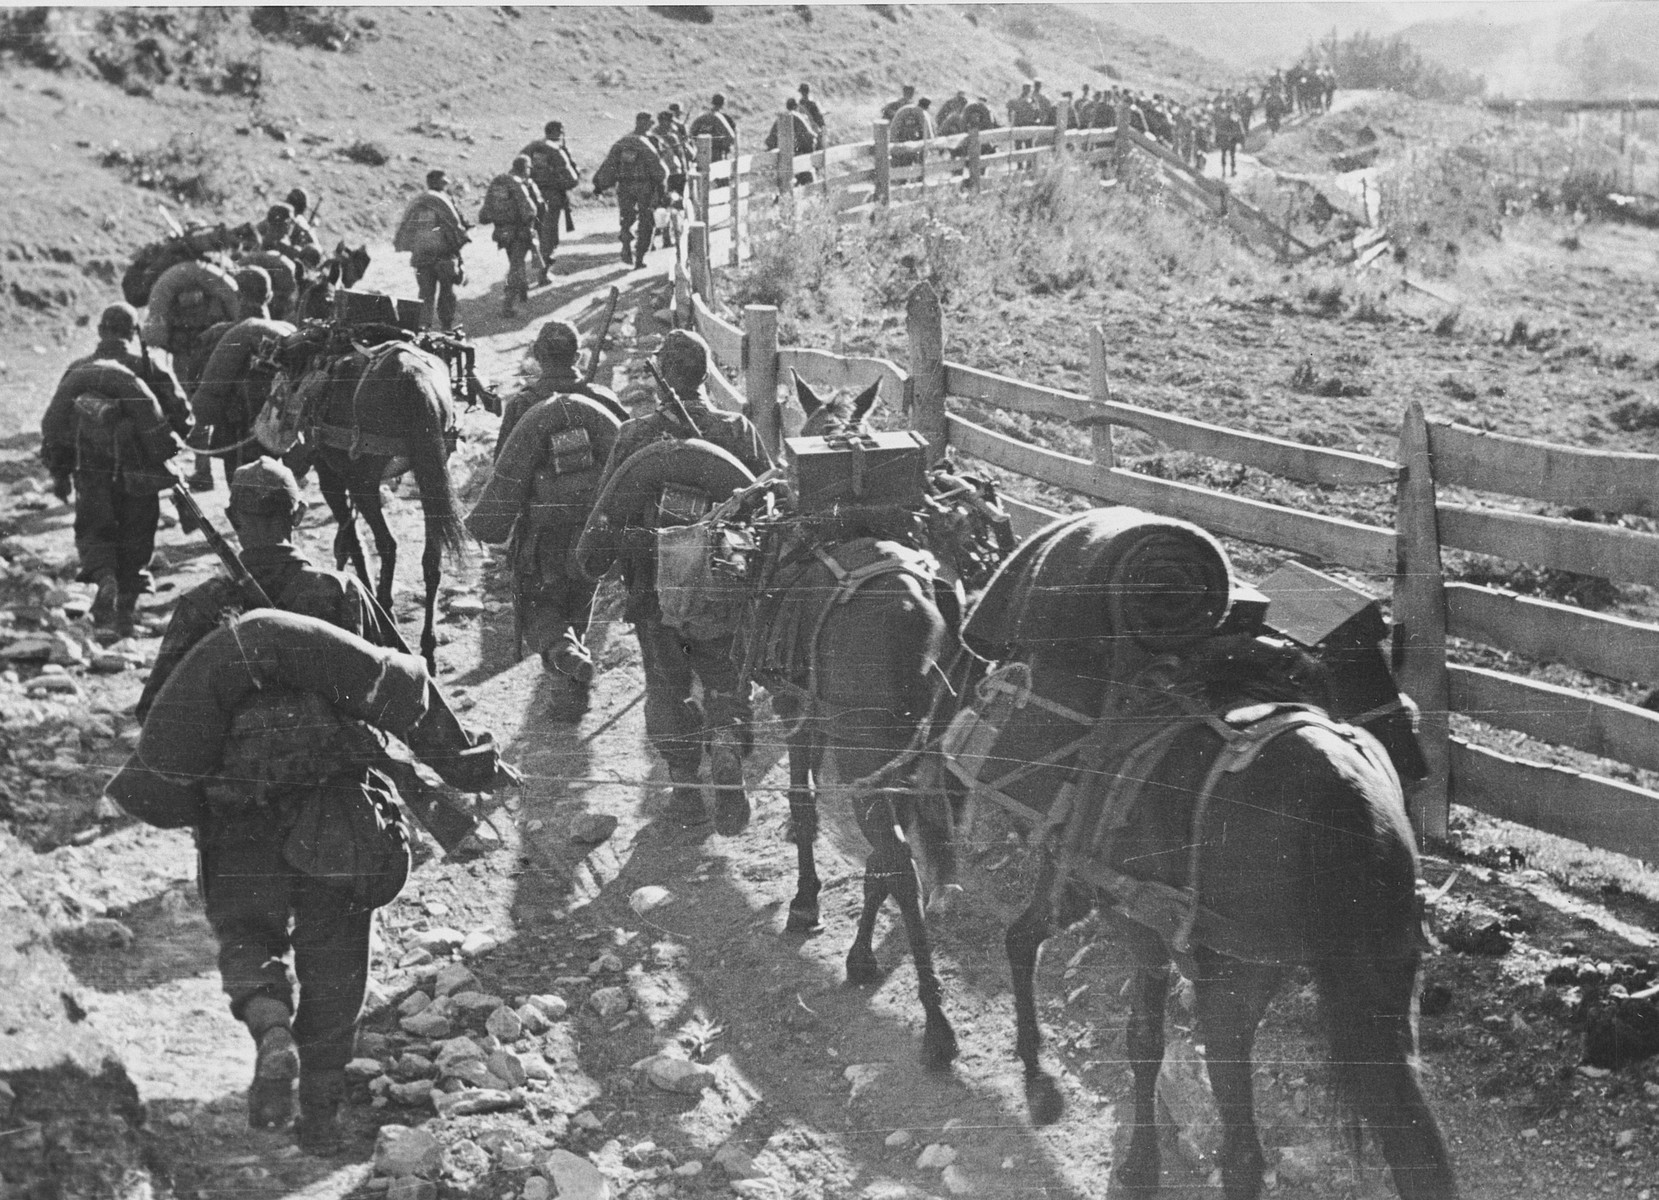 """Members of the """"Prinz Eugen"""" division climb Mount Kopaonik with their horses and supplies.  Original caption reads: """"Marching to action.""""  This is one of a collection of photographs from Friedrich Wilhelm Krueger, commander of the """"Prinz Eugen"""" Division."""